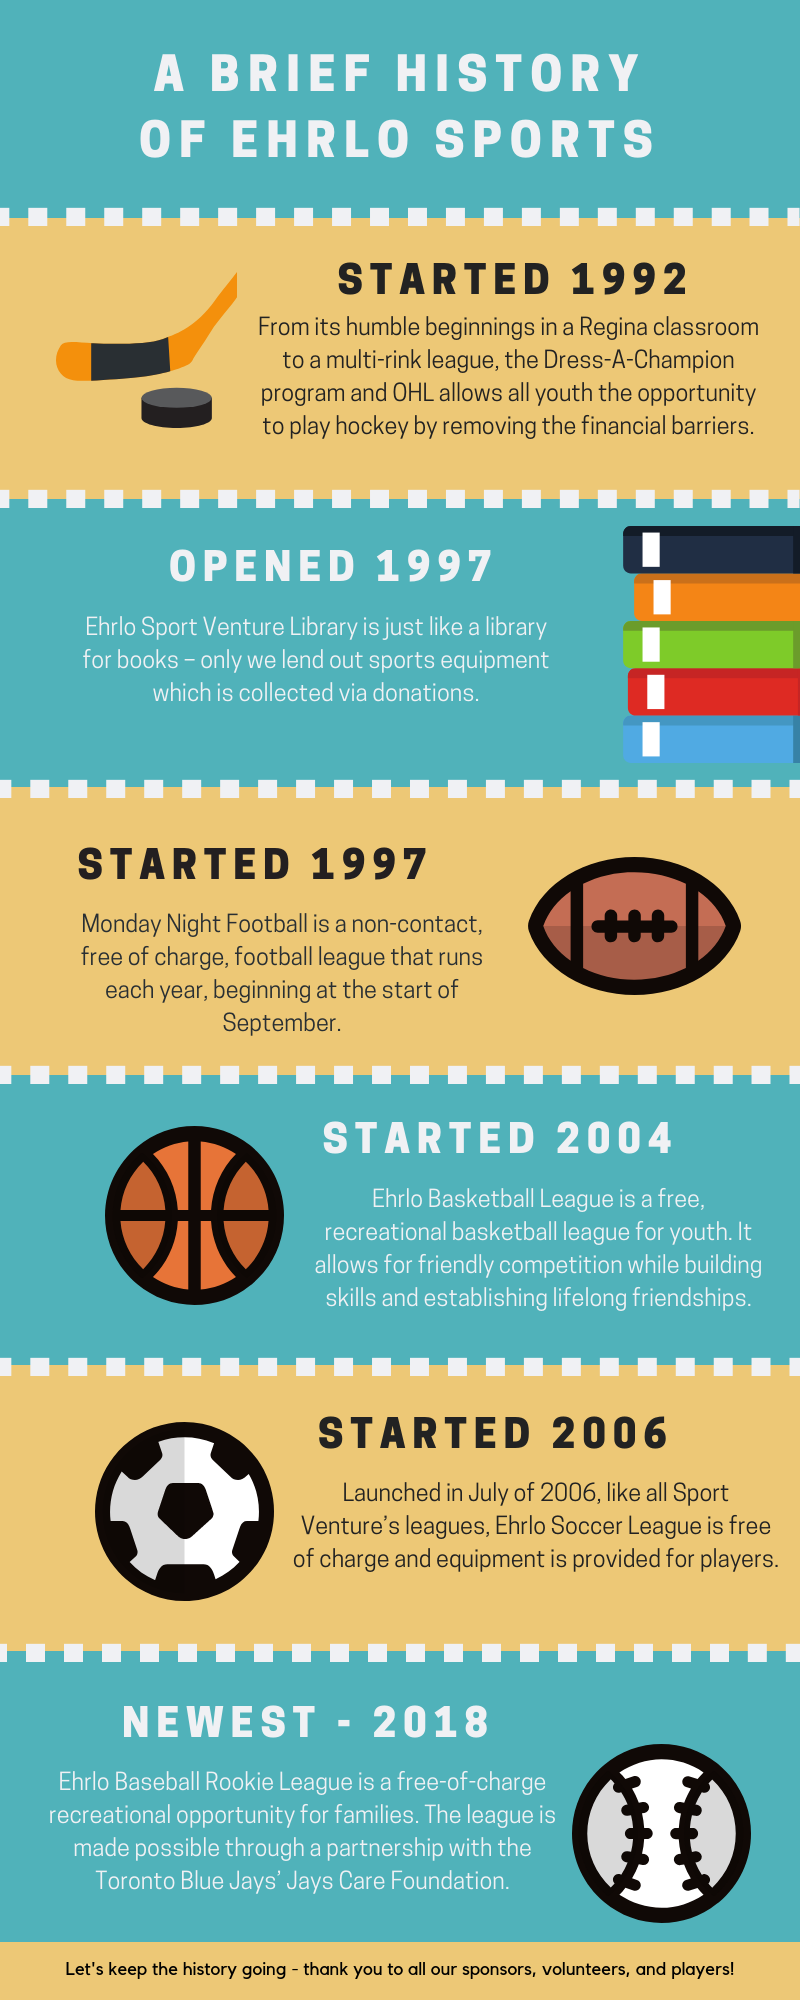 A brief sports history